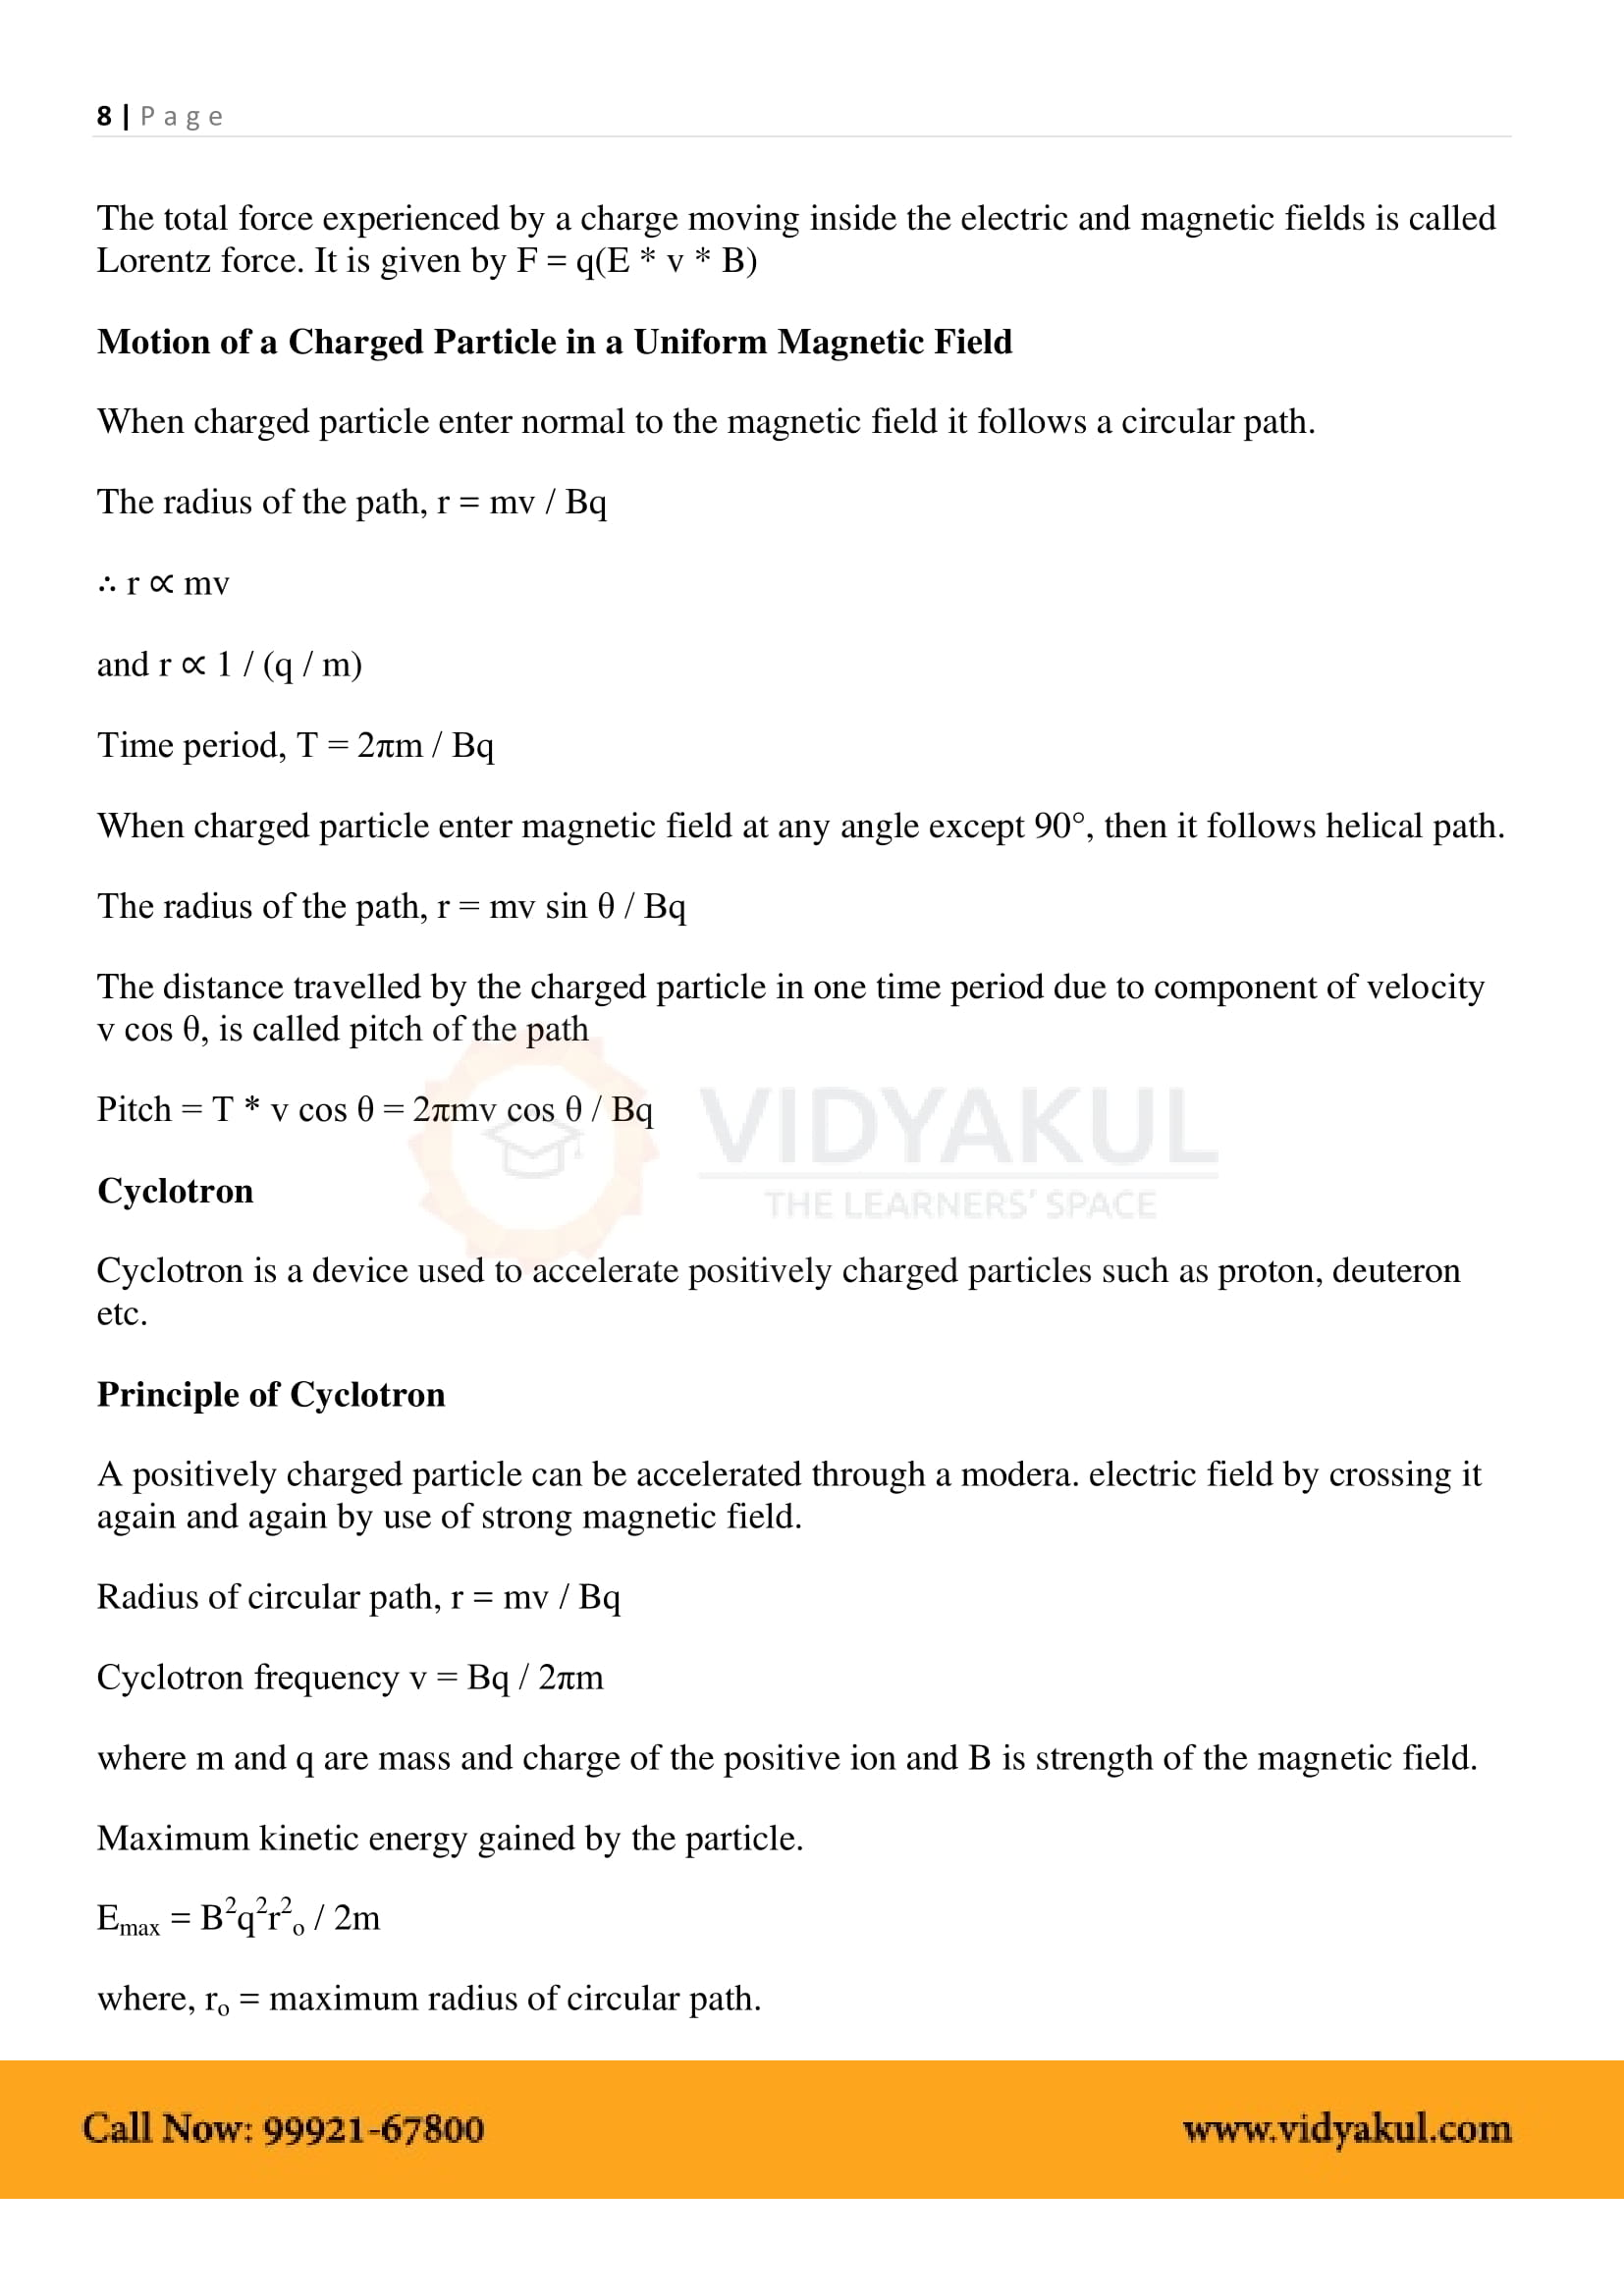 Moving Charges and Magnetism Class 12 Notes | Vidyakul